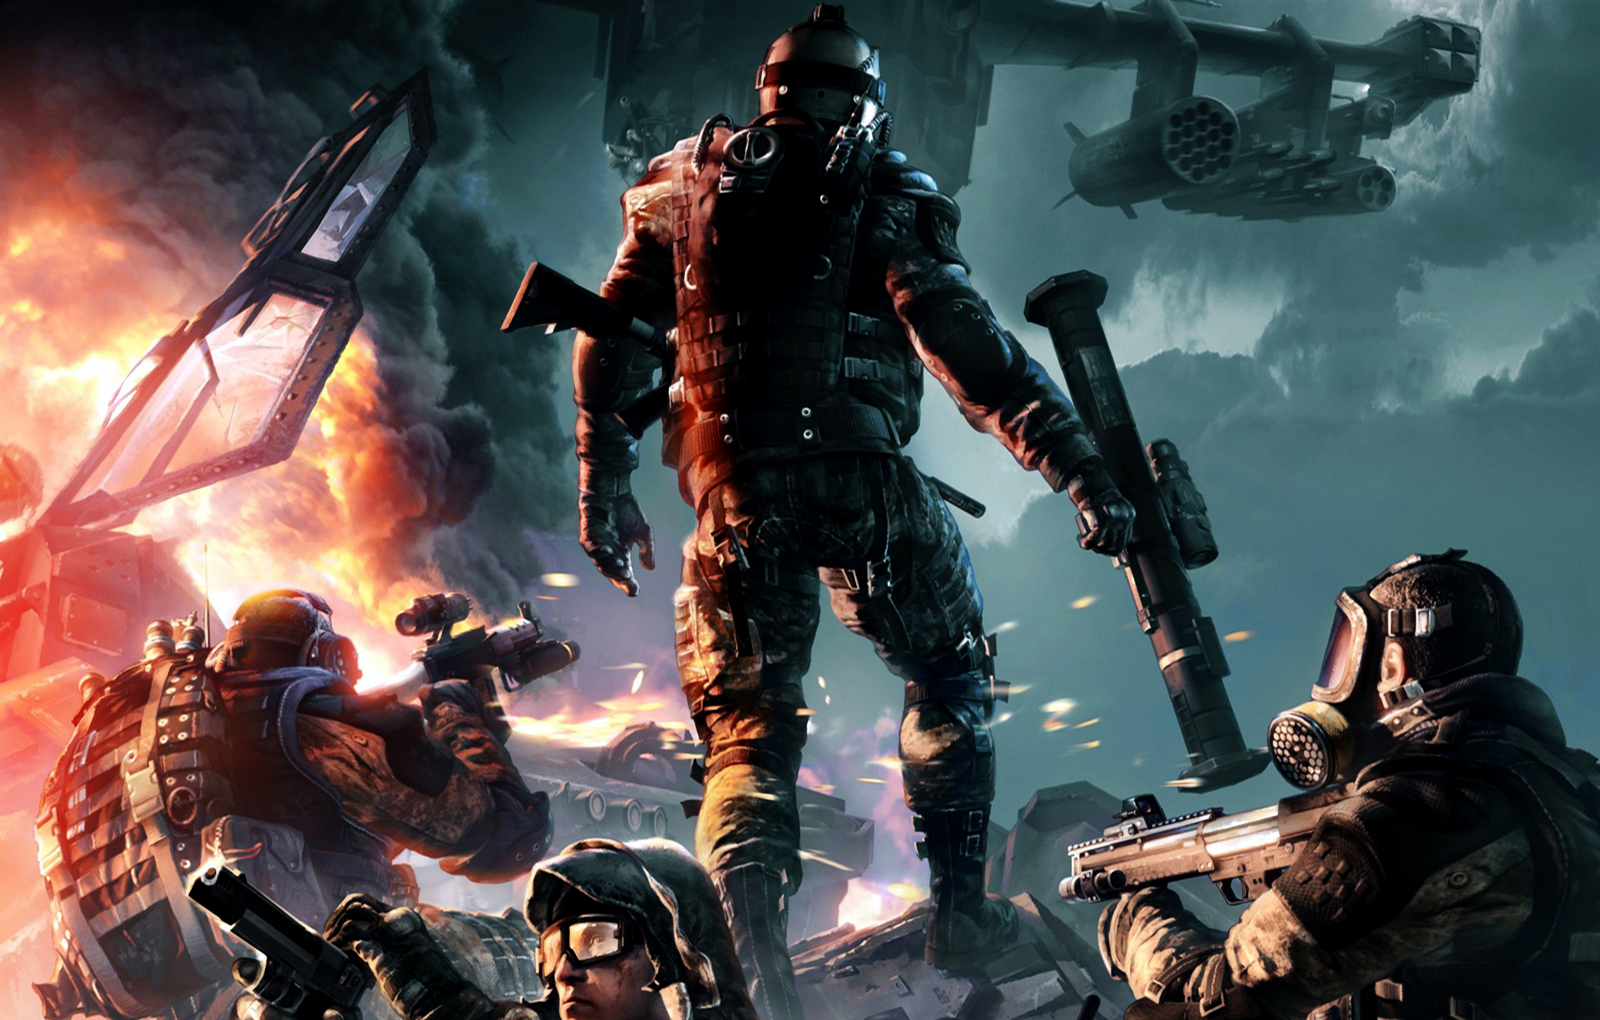 http://2.bp.blogspot.com/-qBji4AP6Rtc/UTJNXaGWcQI/AAAAAAAAFIY/r6pDDU-UHSI/s1600/Warface-2013-PC-Game-HD-Wallpapers.jpg